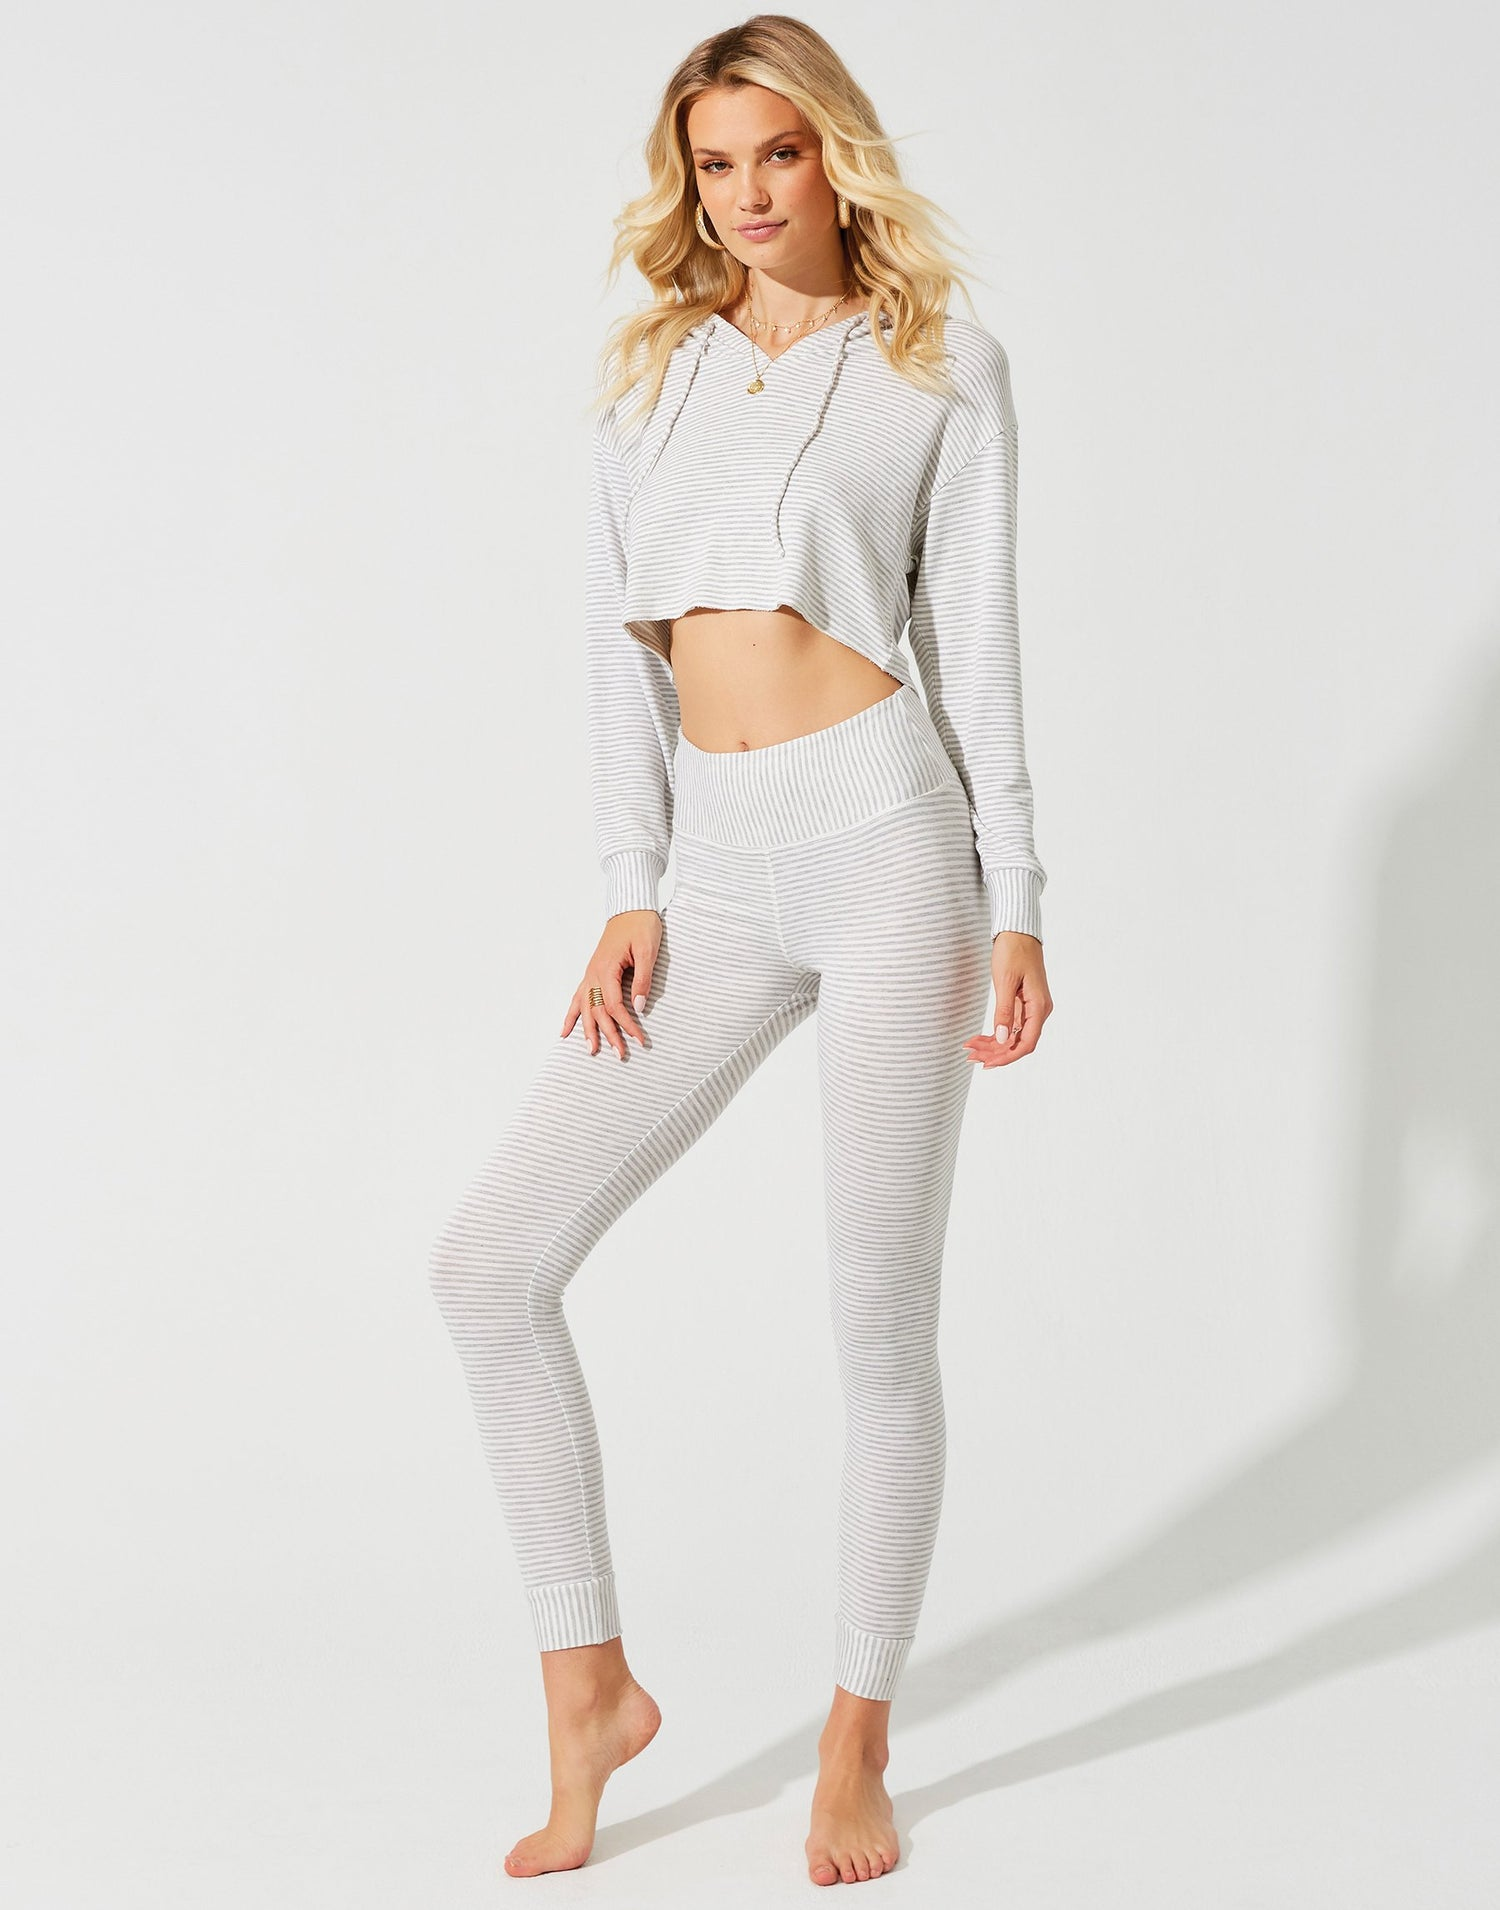 Cameron High Waist Legging in Grey/Cream - front view